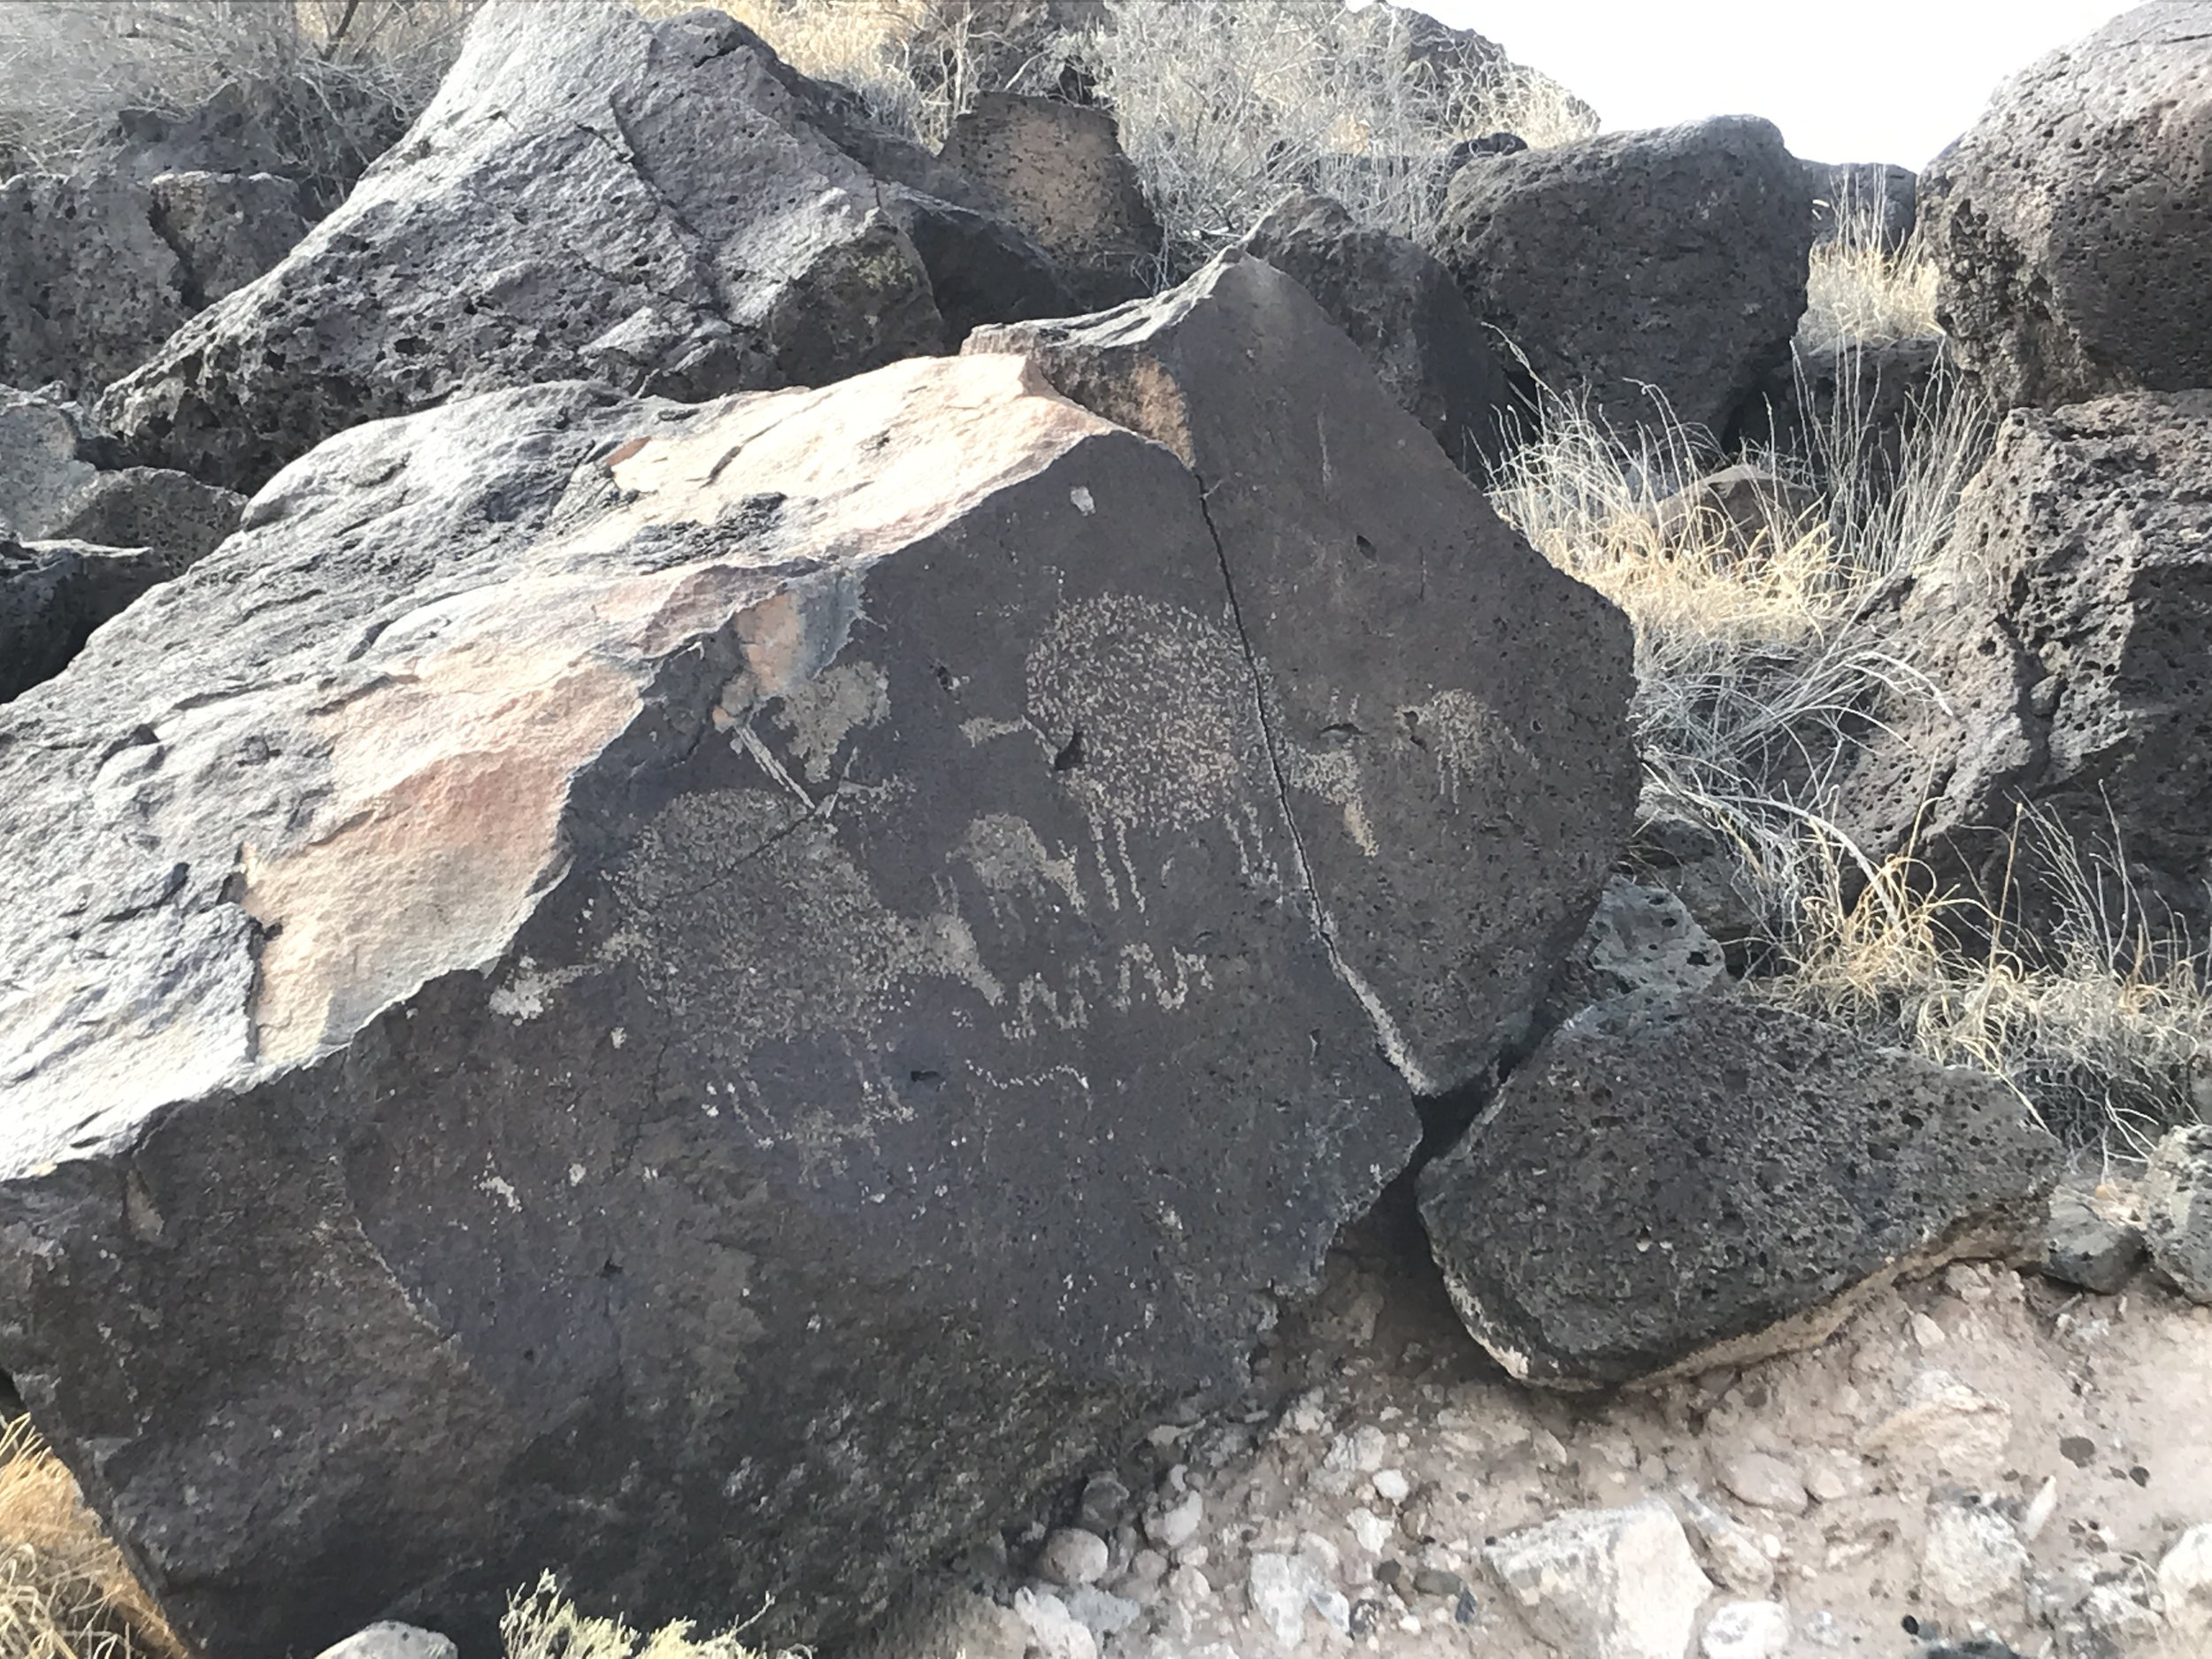 """Rinconada Canyon hiking sign: """"Grazing sheep are portrayed in this petroglyph. We know for certain that sheep, a non-native species, were brought by the Spanish settlers in the 1600s. With this information we can safely say that this petroglyph was made after A.D. 1600."""""""